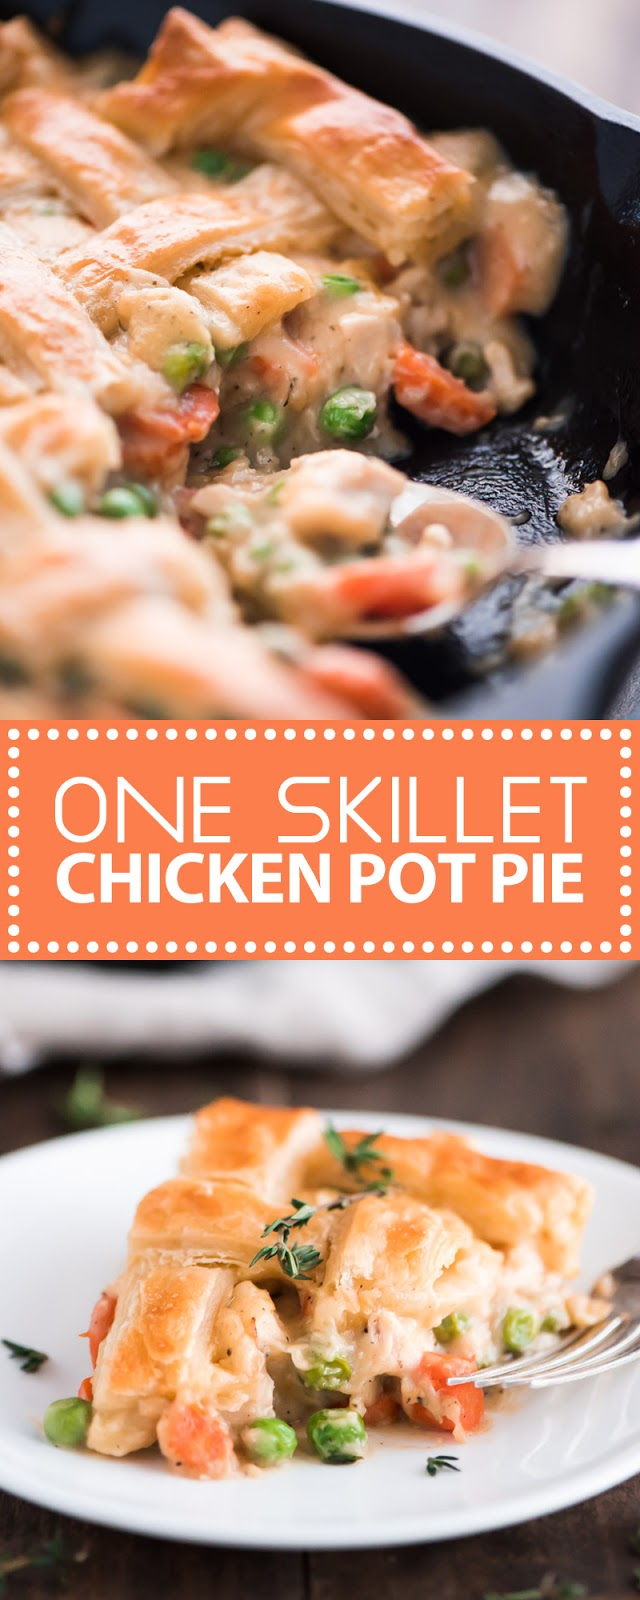 ONE SKILLET CHICKEN POT PIE